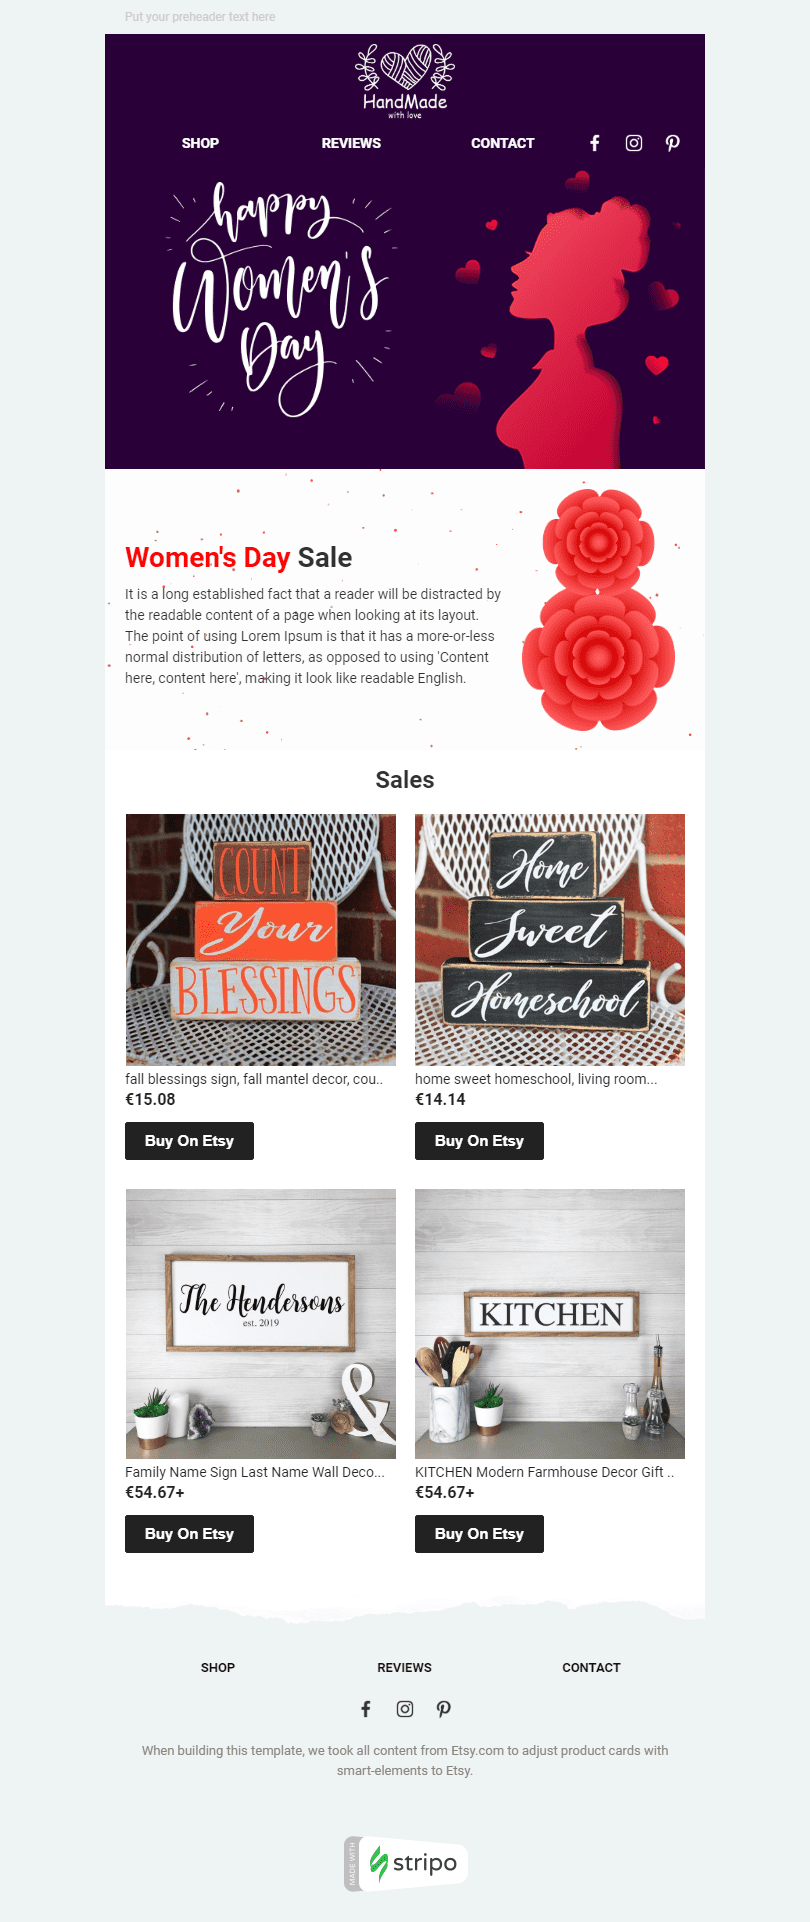 Women's Day Email Template «Women's Secrets» for Ecommerce industry desktop view